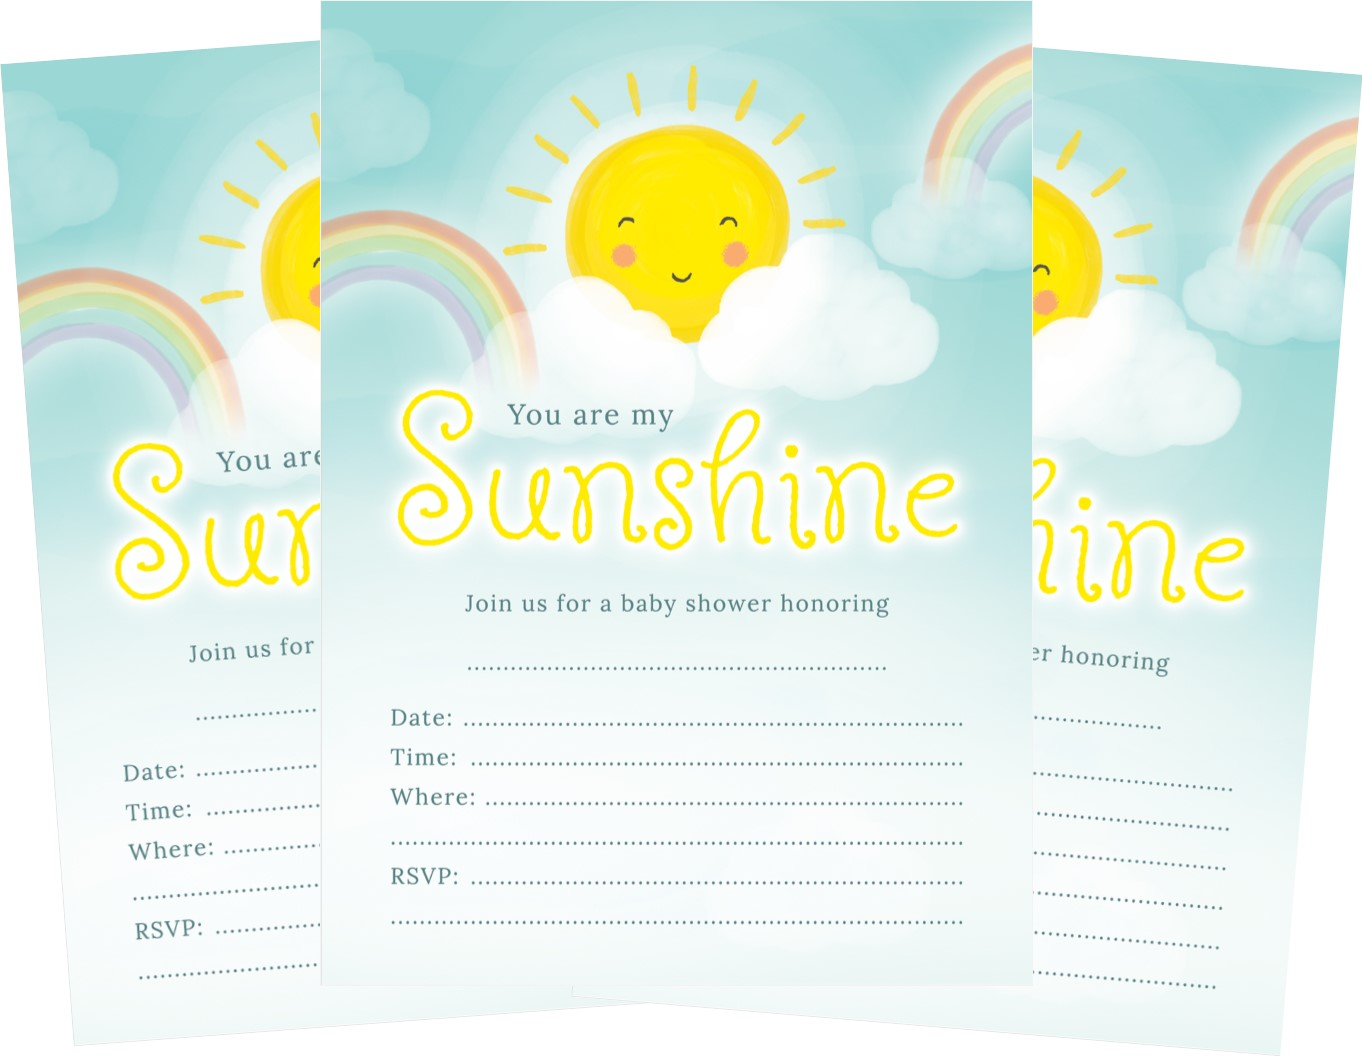 You are my sunshine baby shower invite